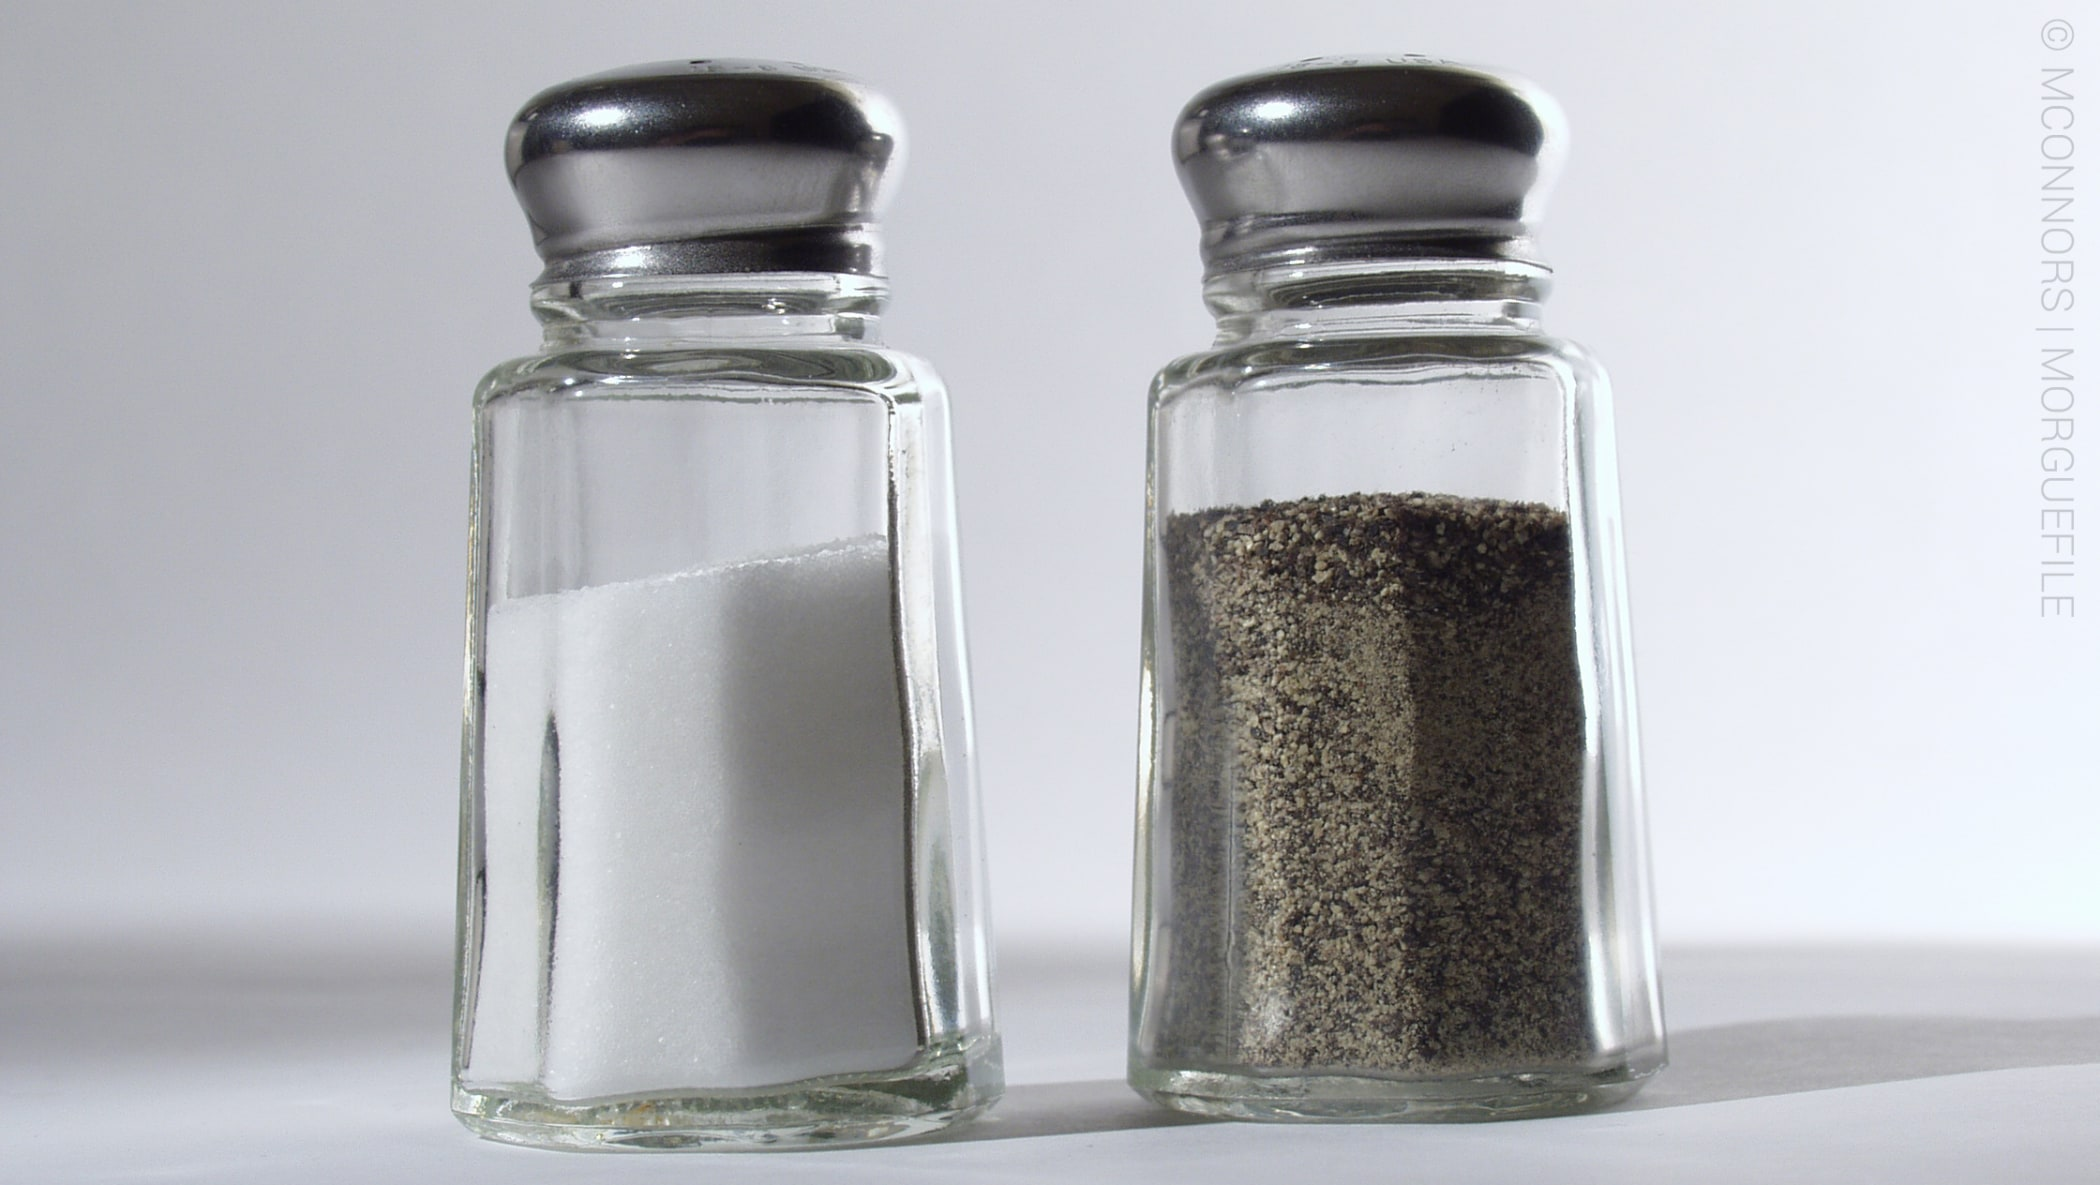 The FDA recommends individuals limit sodium consumption to 2,300 mg a day, or about 1 teaspoon of salt.